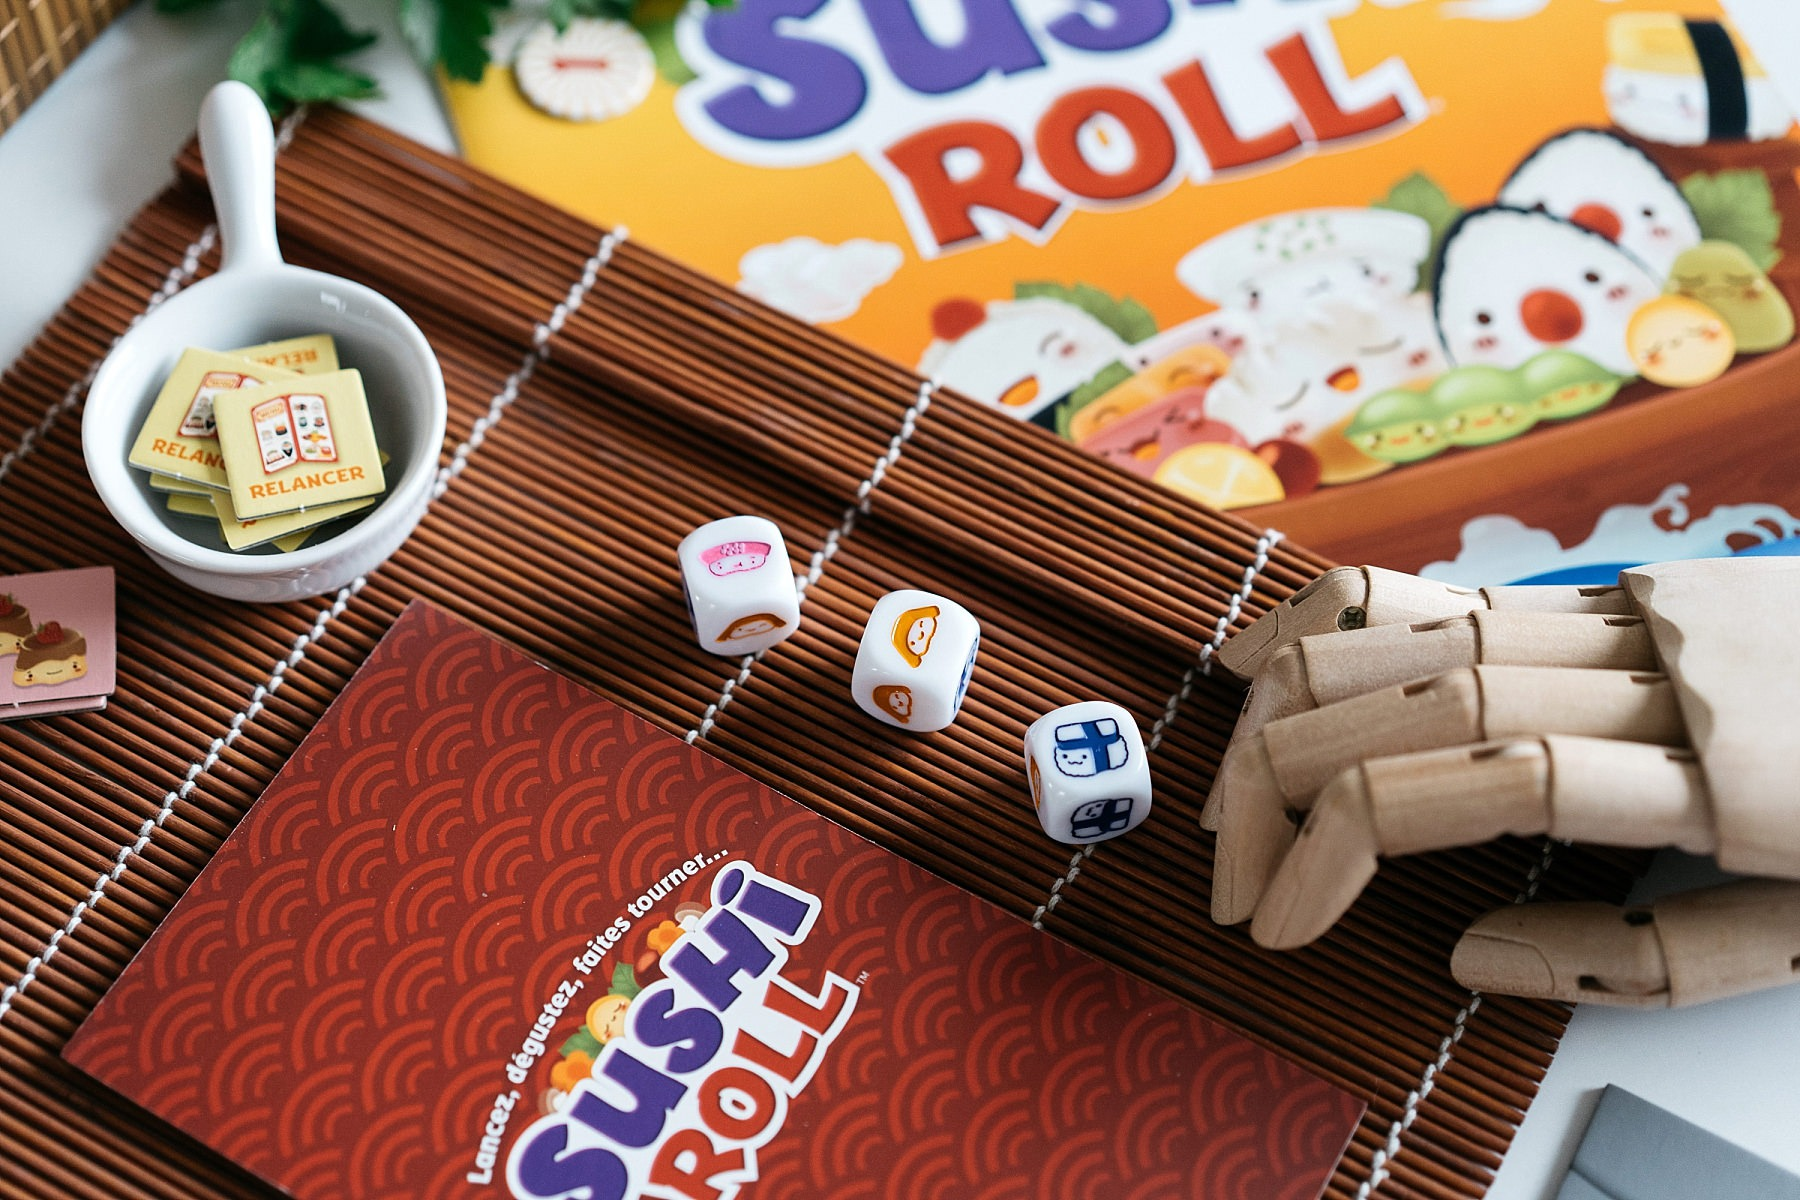 Sushi roll cocktail games